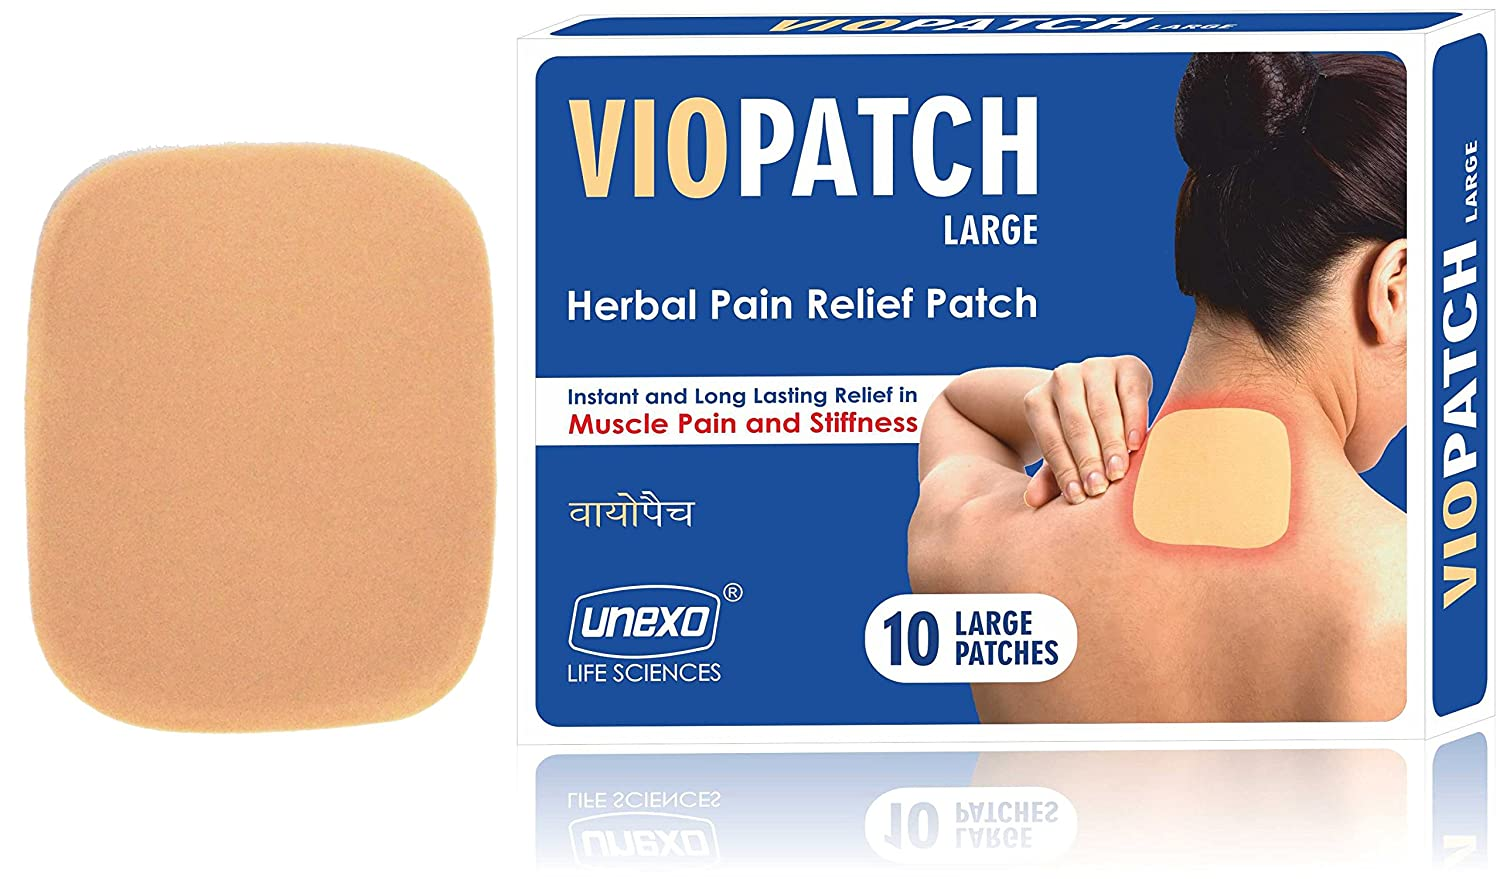 viopatch large harbal pain relief patch